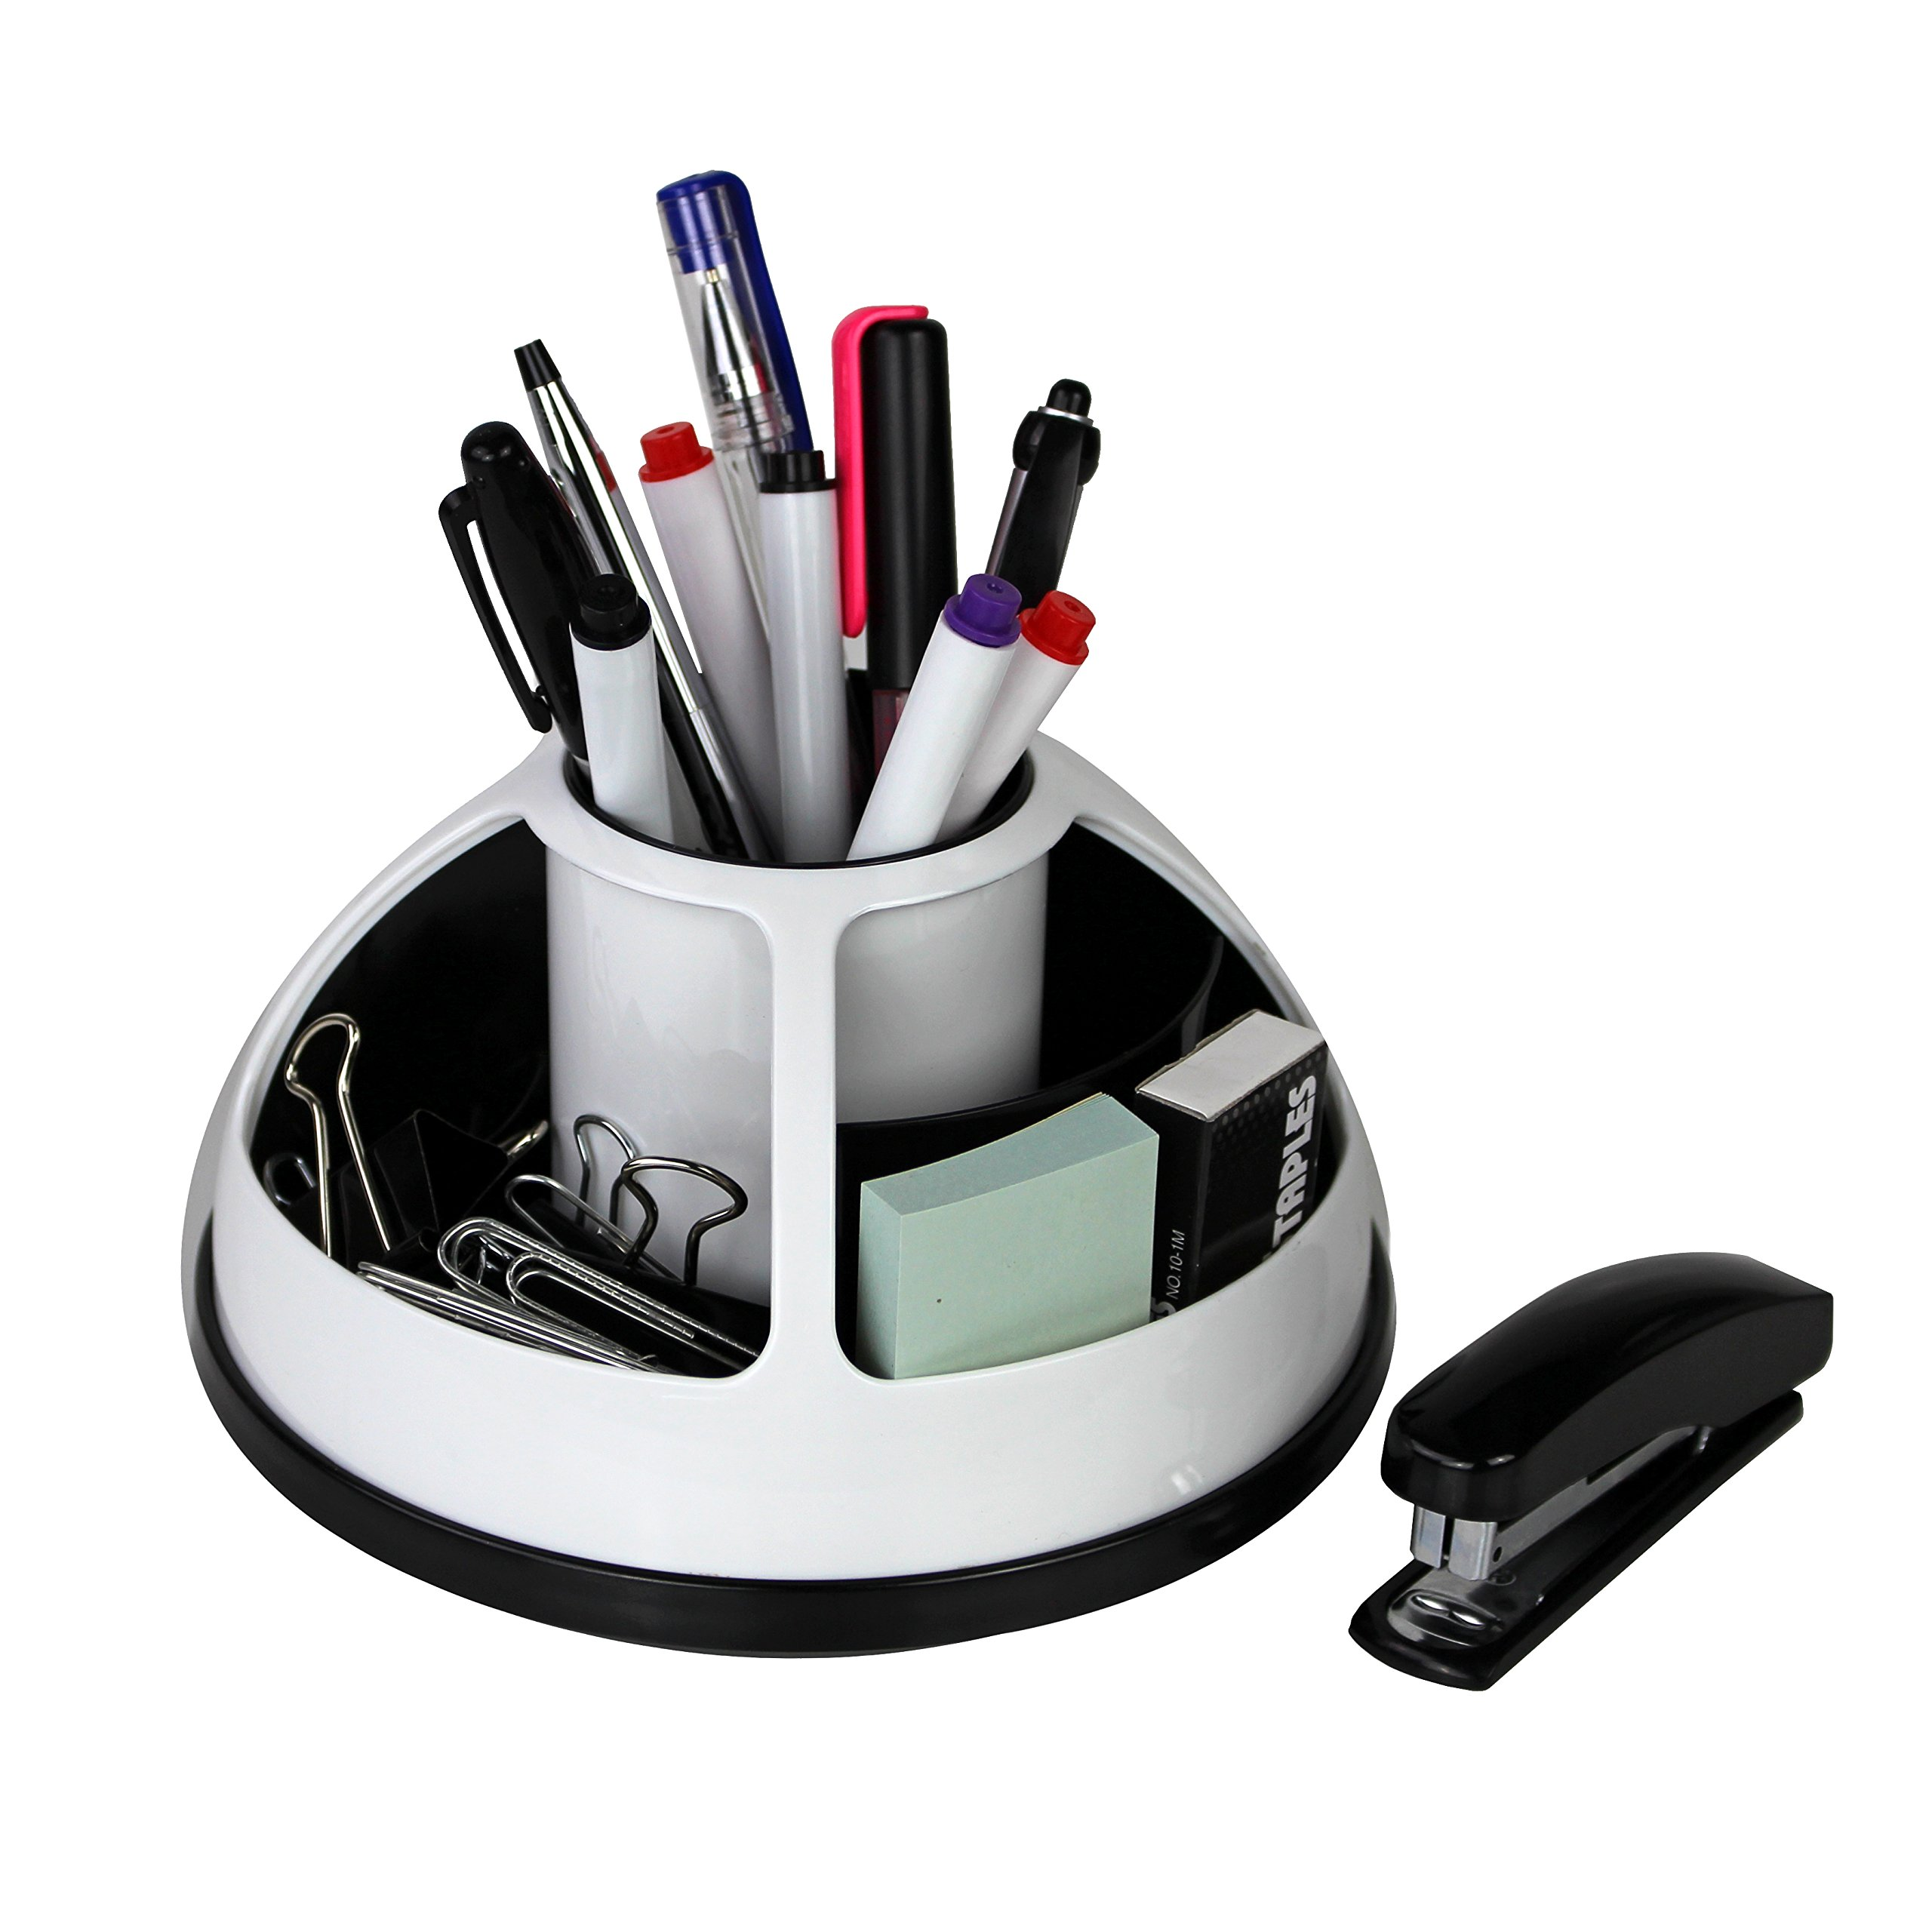 Rotating Office Supplies Desk Organizer Caddy – Plastic – Black and White by O-Life …